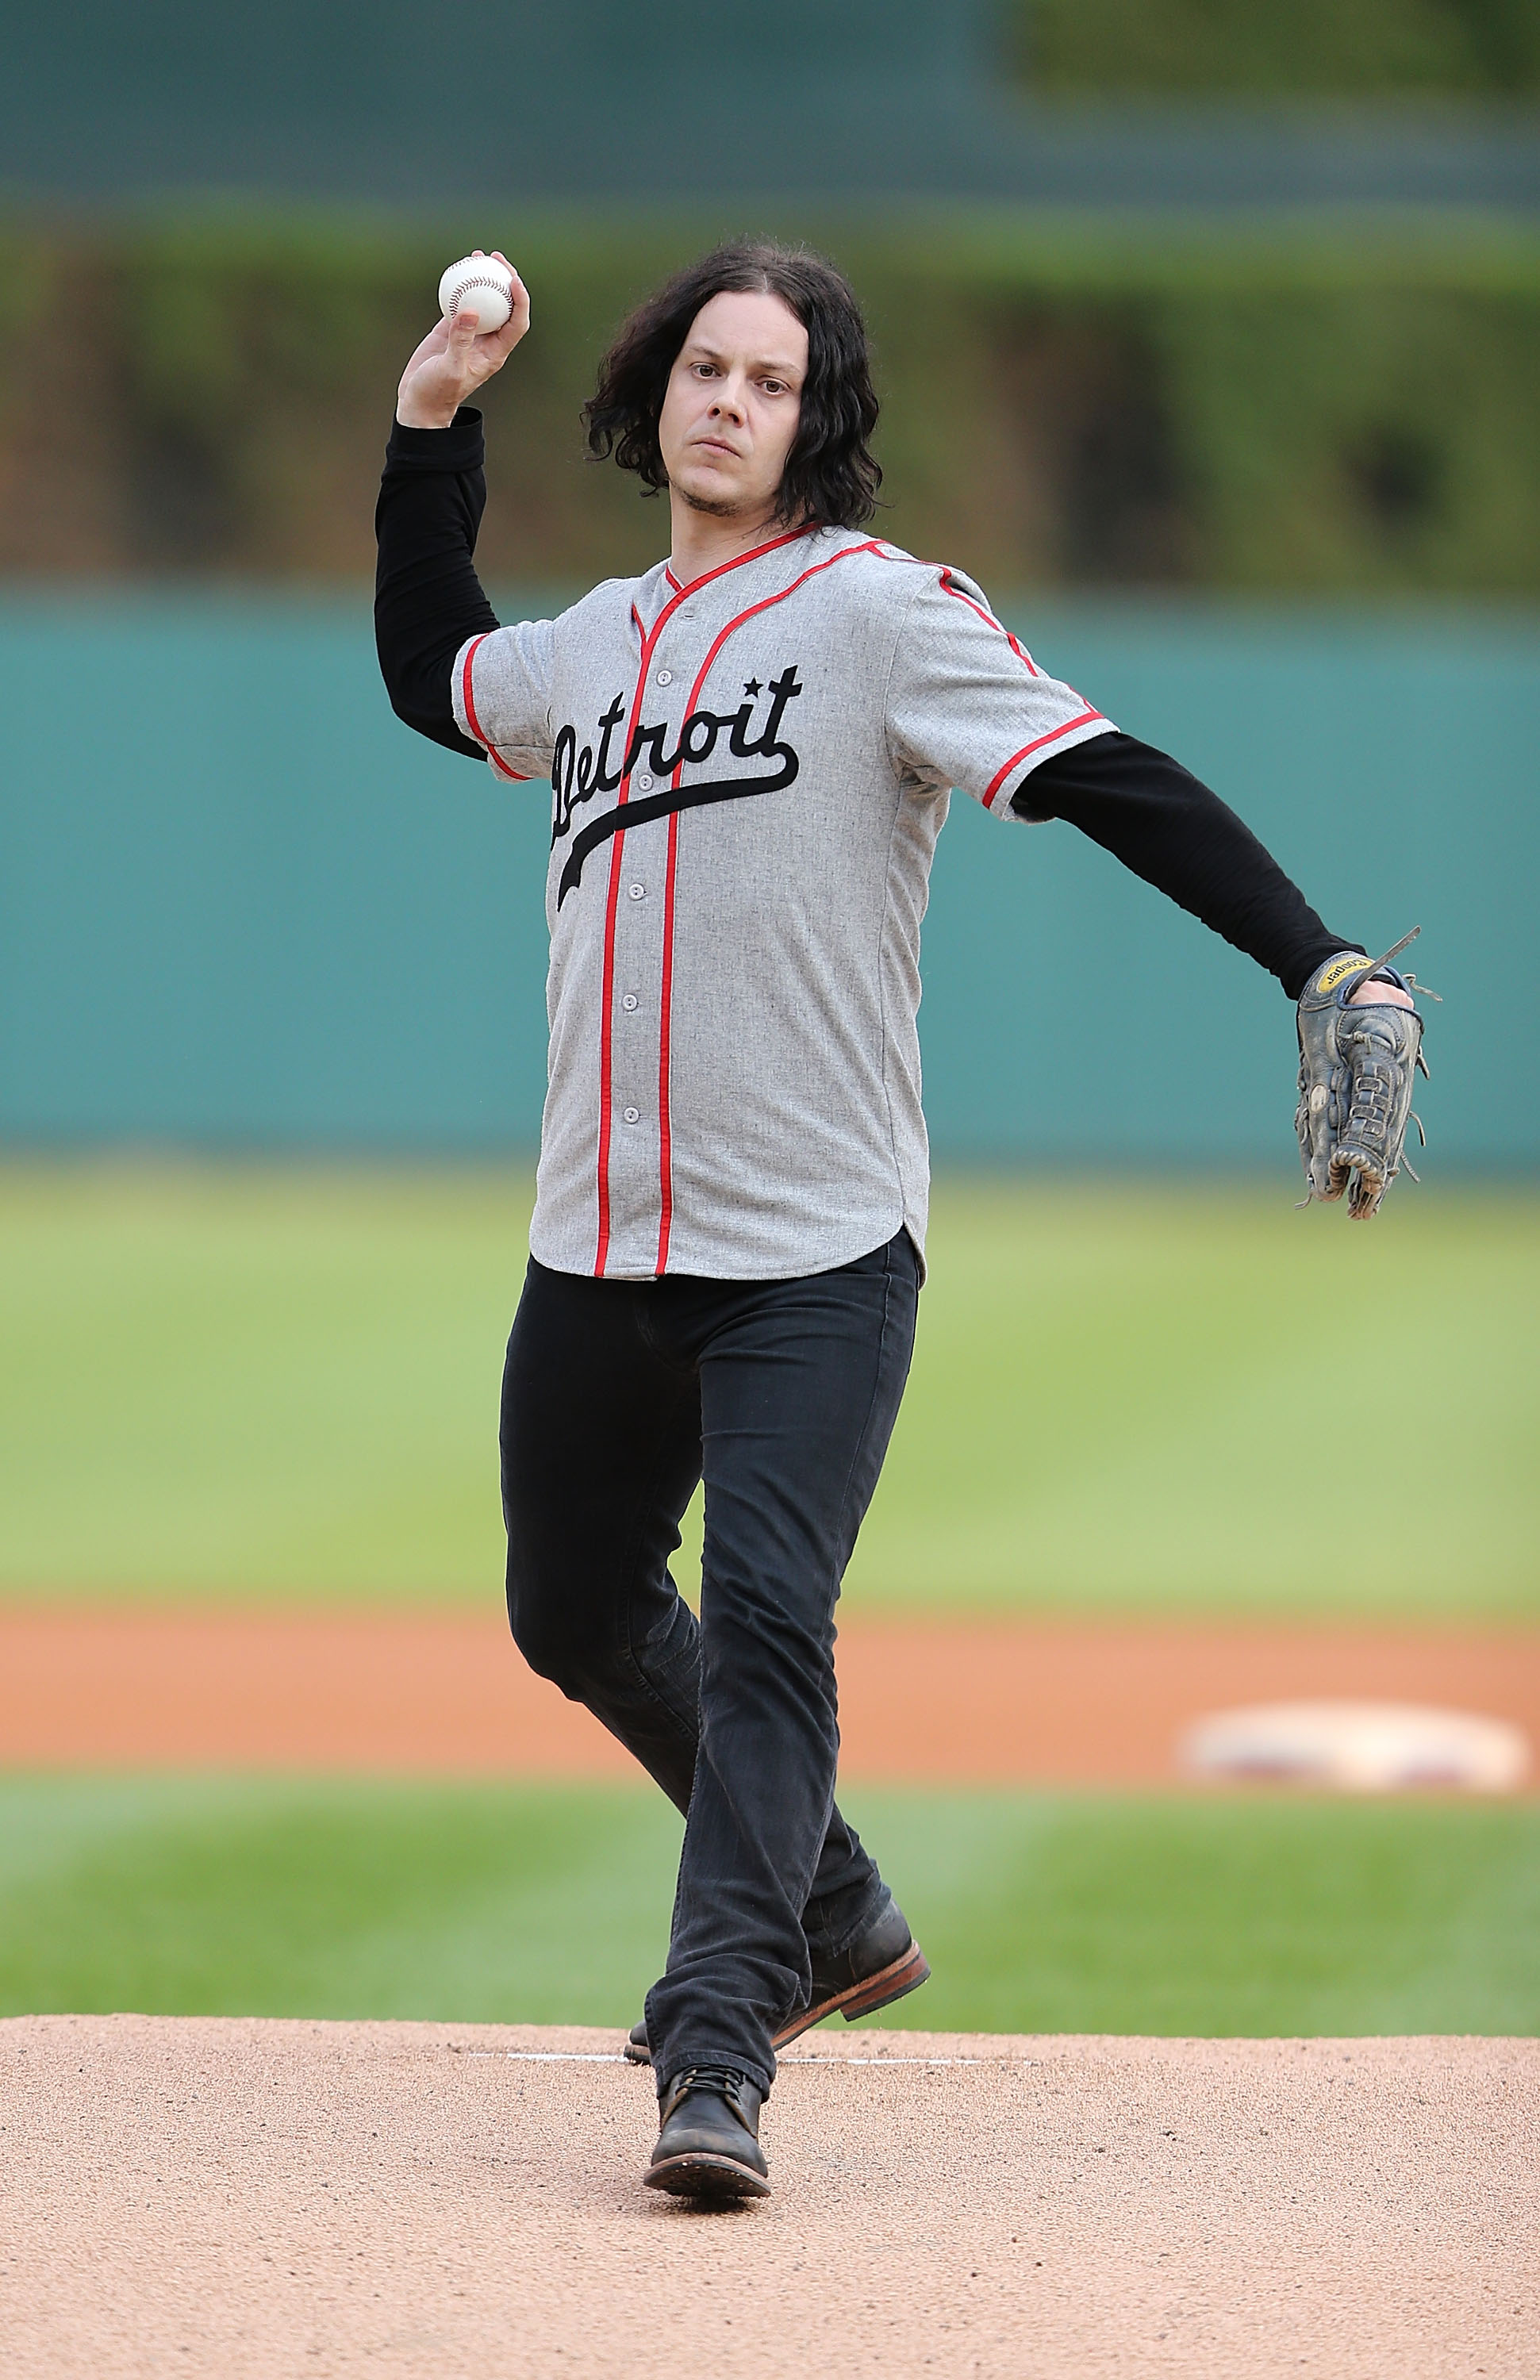 Watch Sad Jack White Throw Out The First Pitch At Tonight's Tigers Game